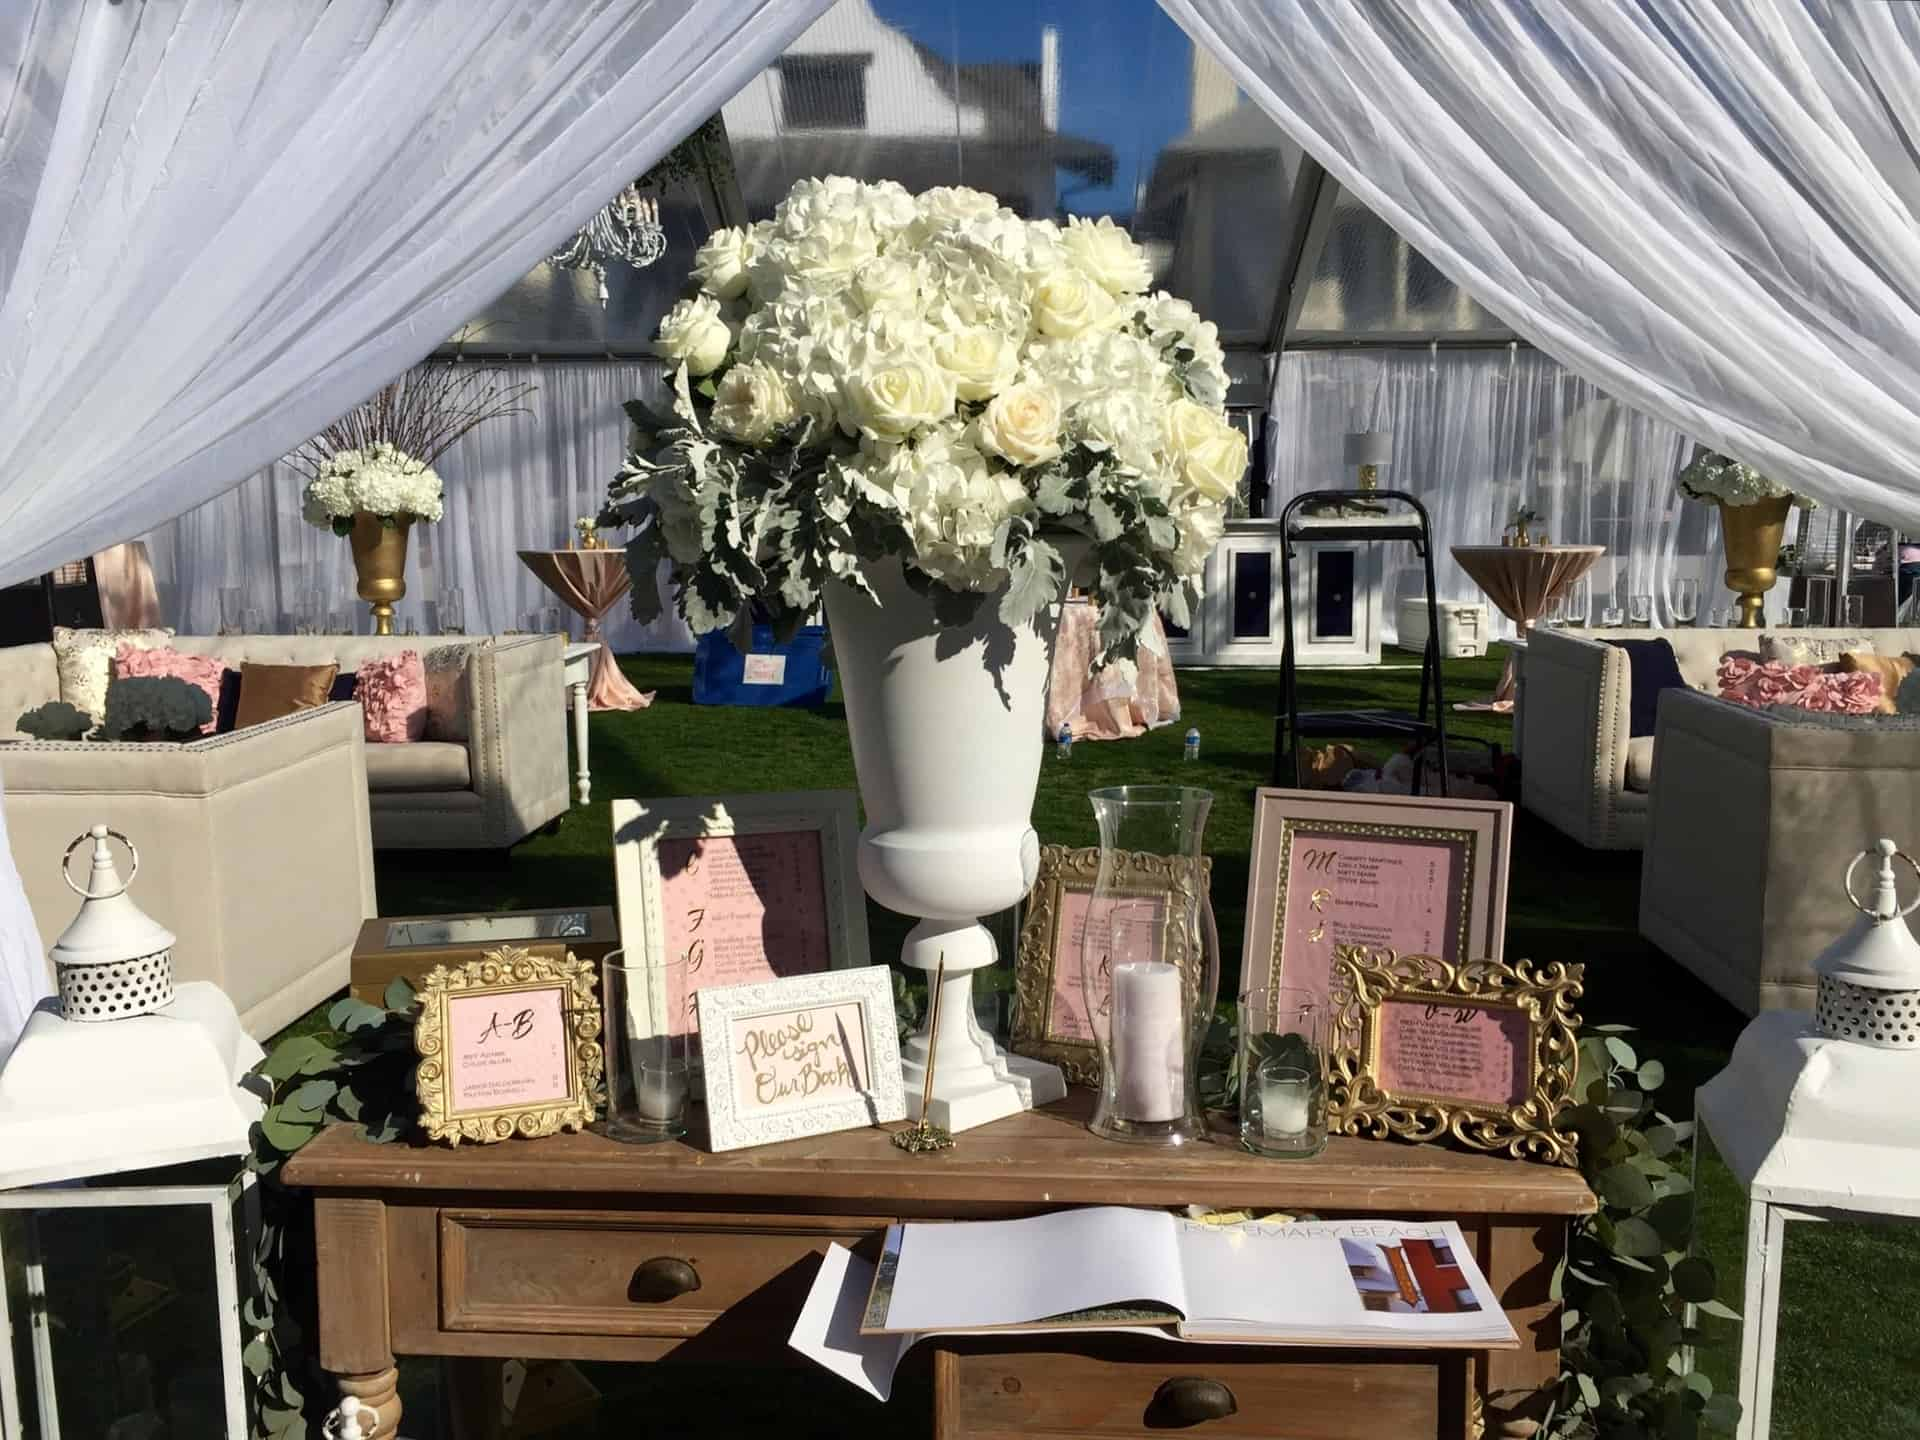 Wedding Guest Book: Know More About It